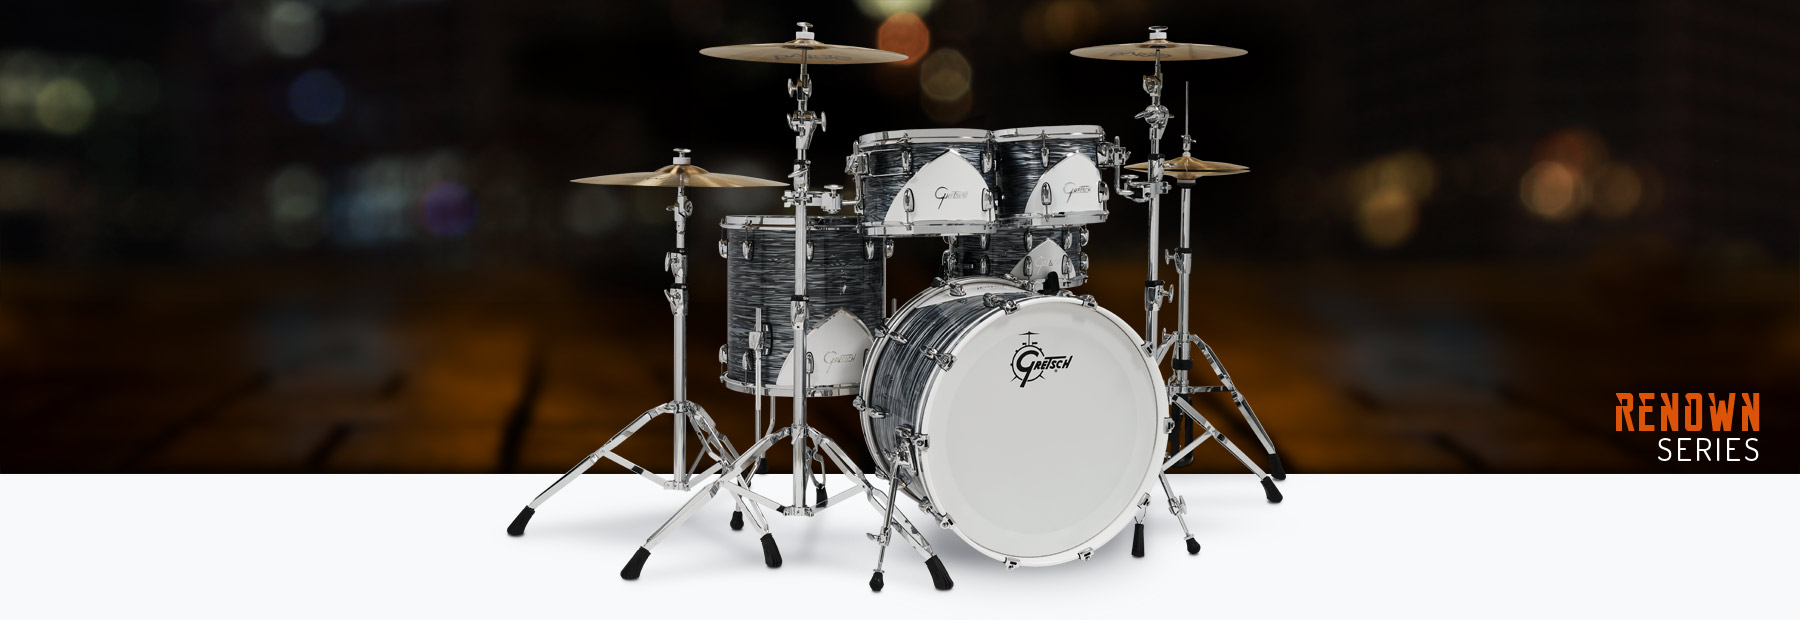 https://www.gretschdrums.com/sites/default/files/drums/Banner-Renown.jpg